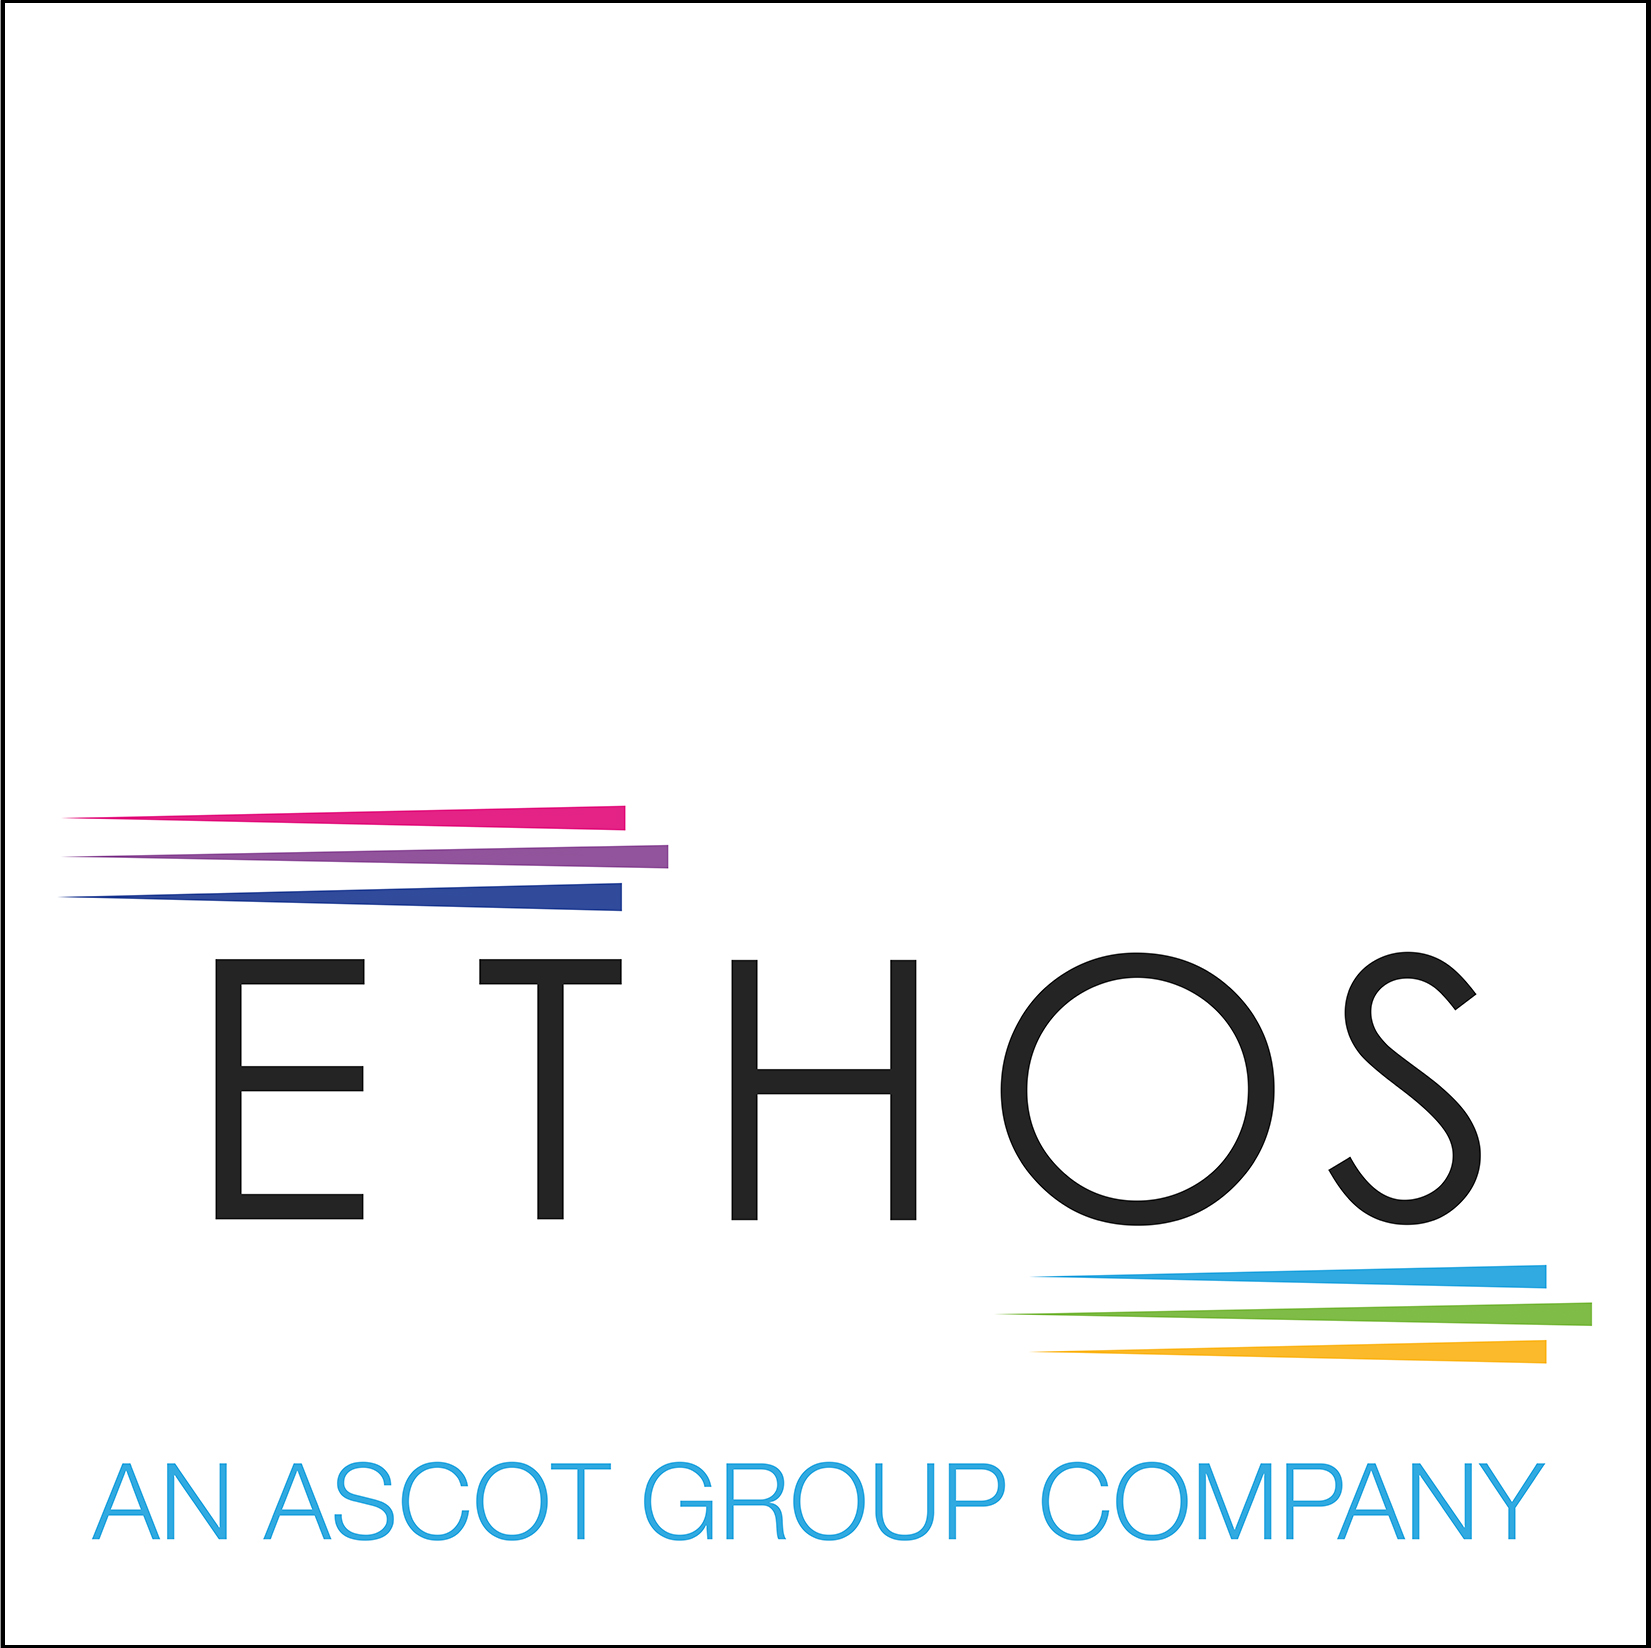 ETHOS LOGO WHITE WITH NO BORDER